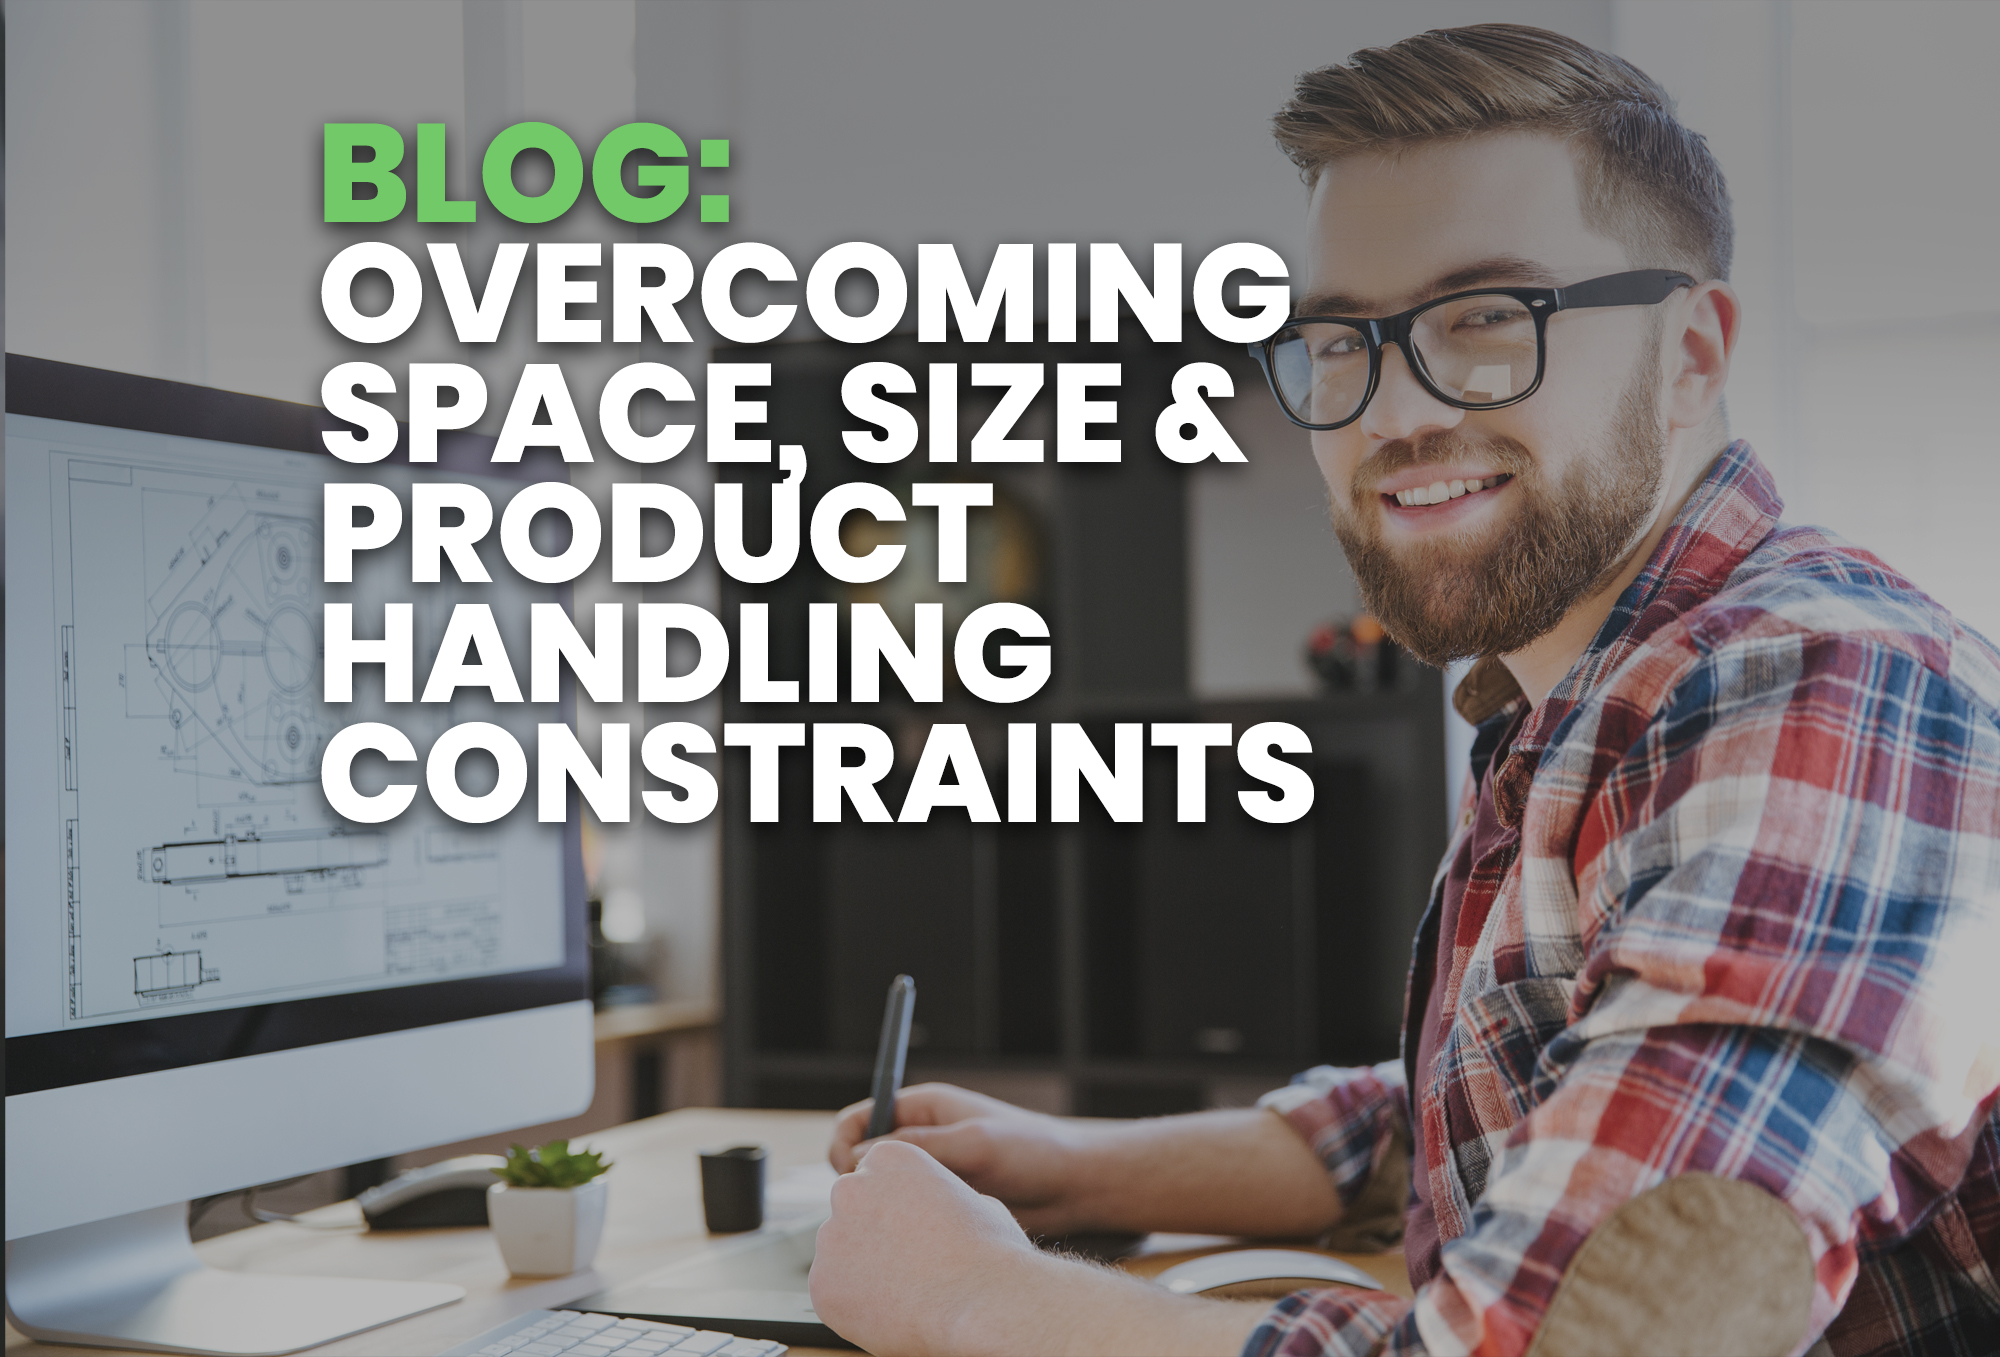 blog- Overcoming Space, Size & Product Handling Constraints